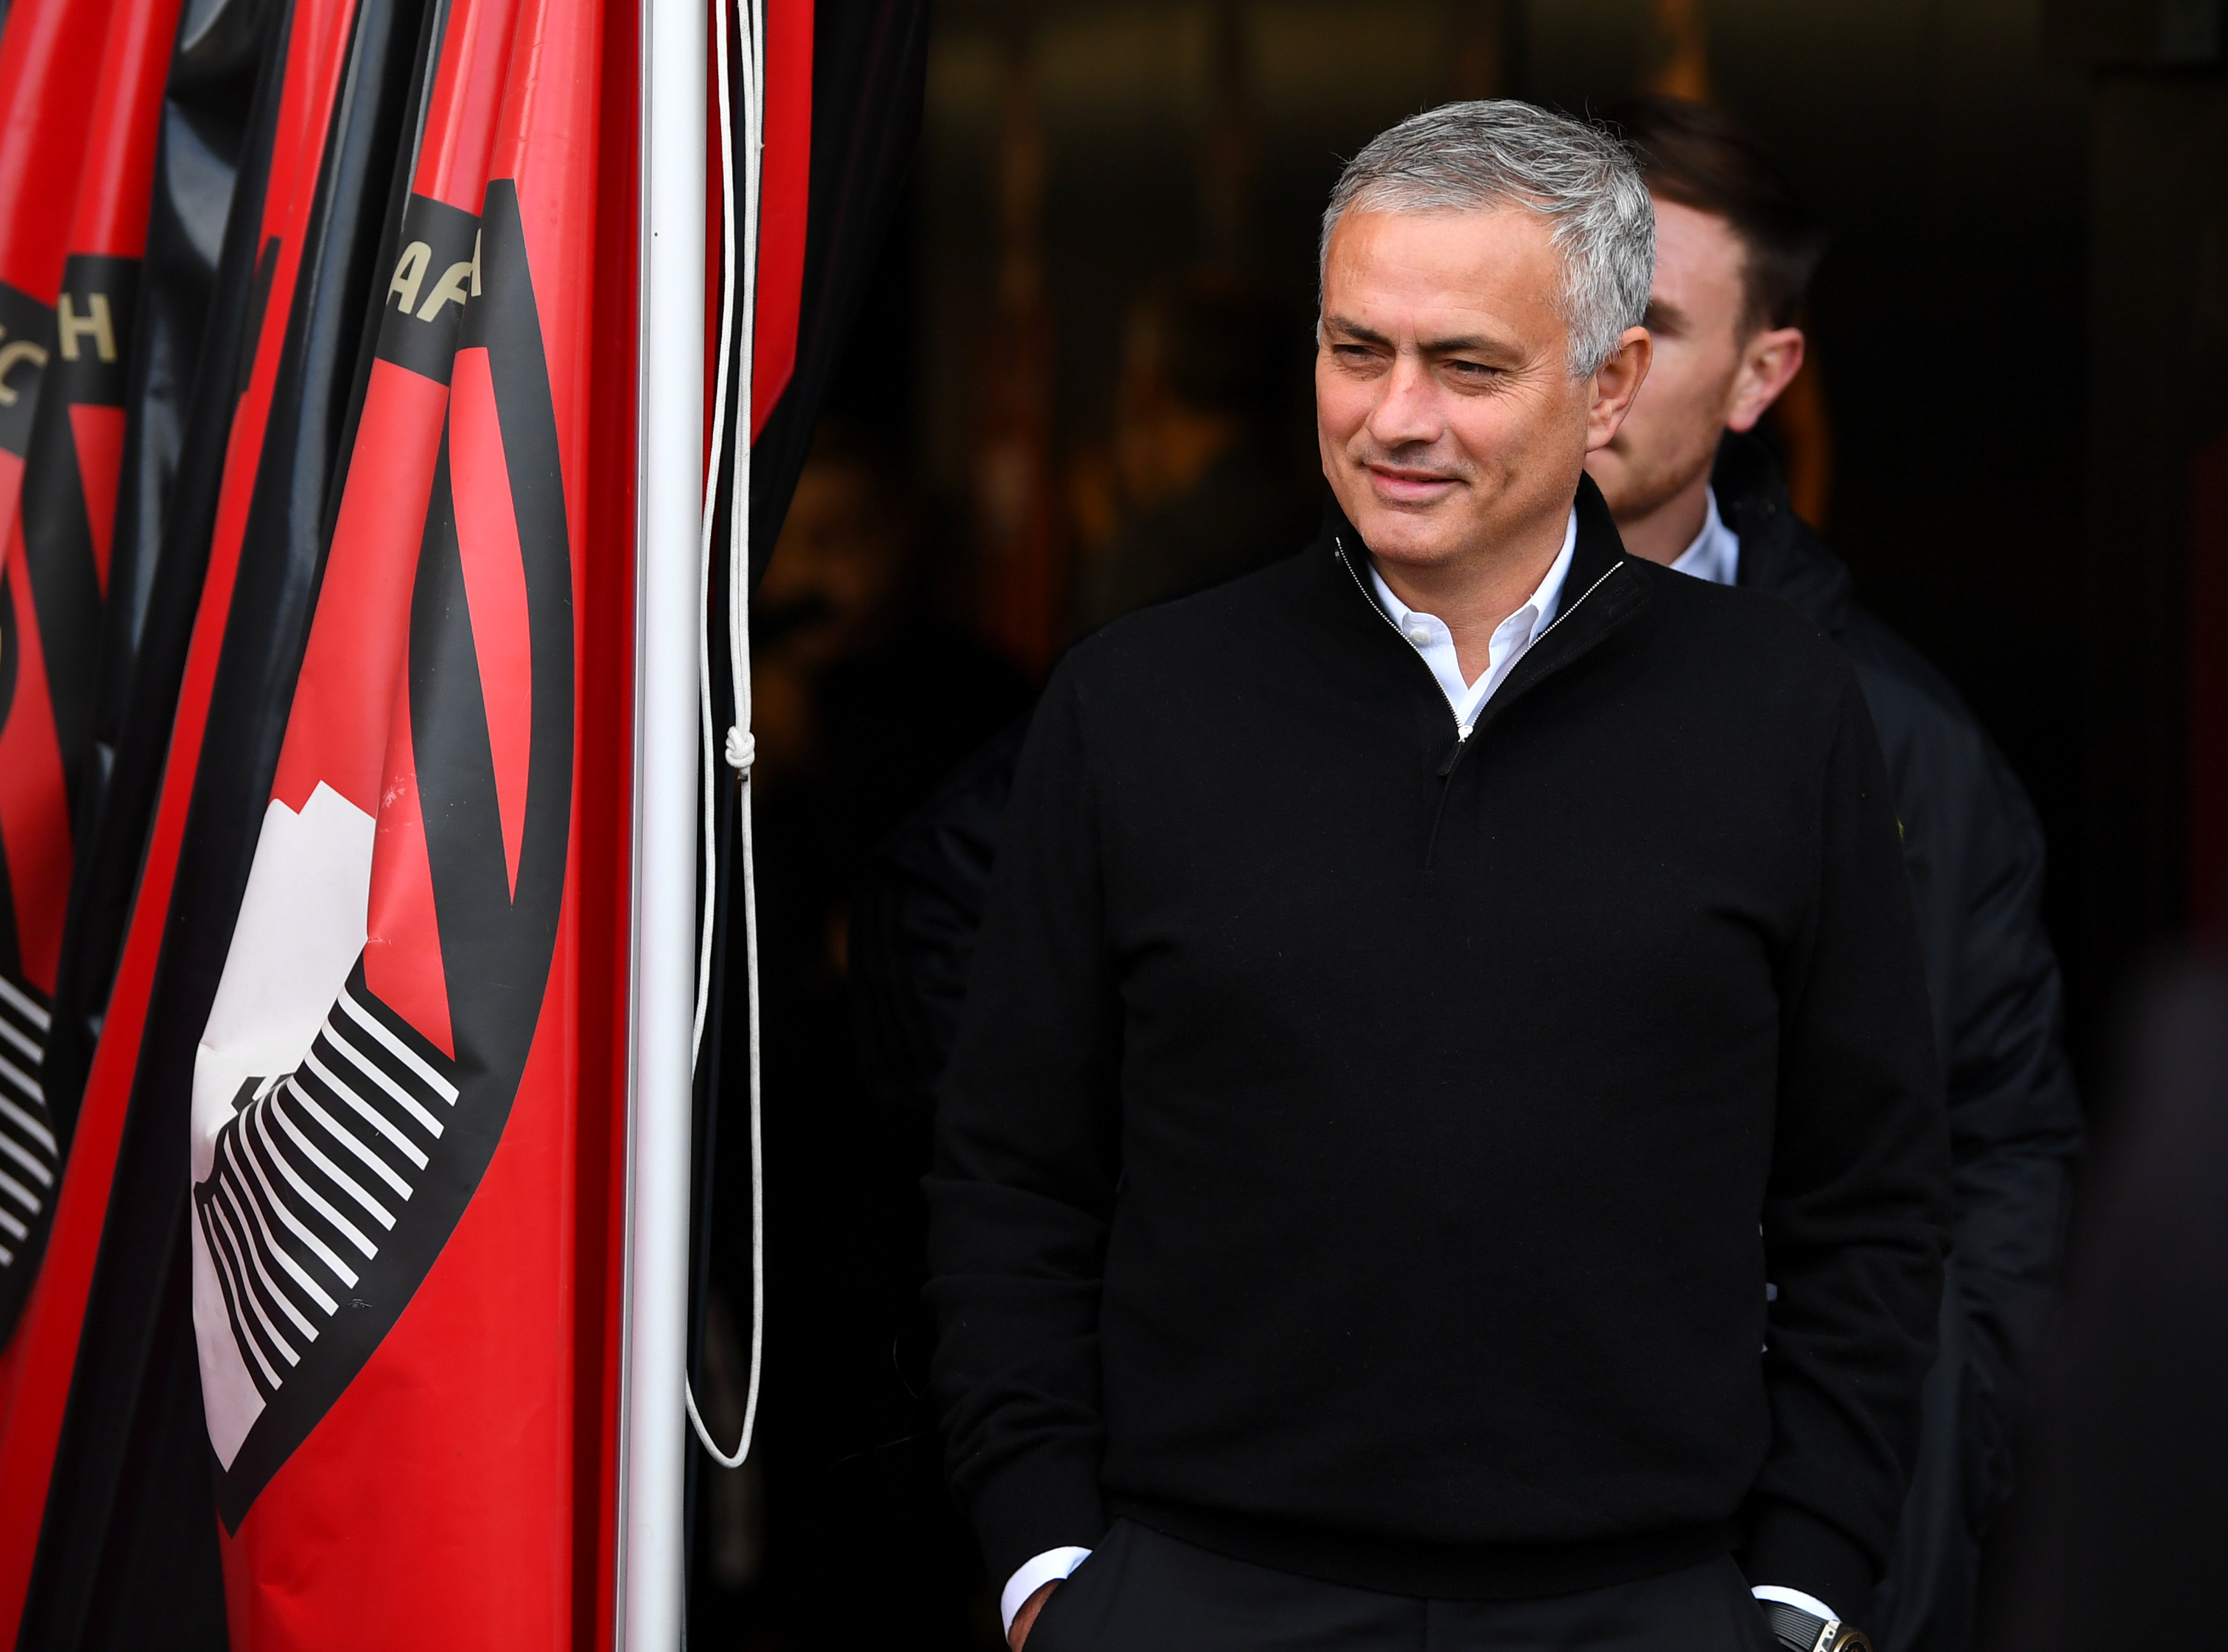 Soccer Football - Premier League - AFC Bournemouth v Manchester United - Vitality Stadium, Bournemouth, Britain - November 3, 2018  Manchester United manager Jose Mourinho before the match. REUTERS